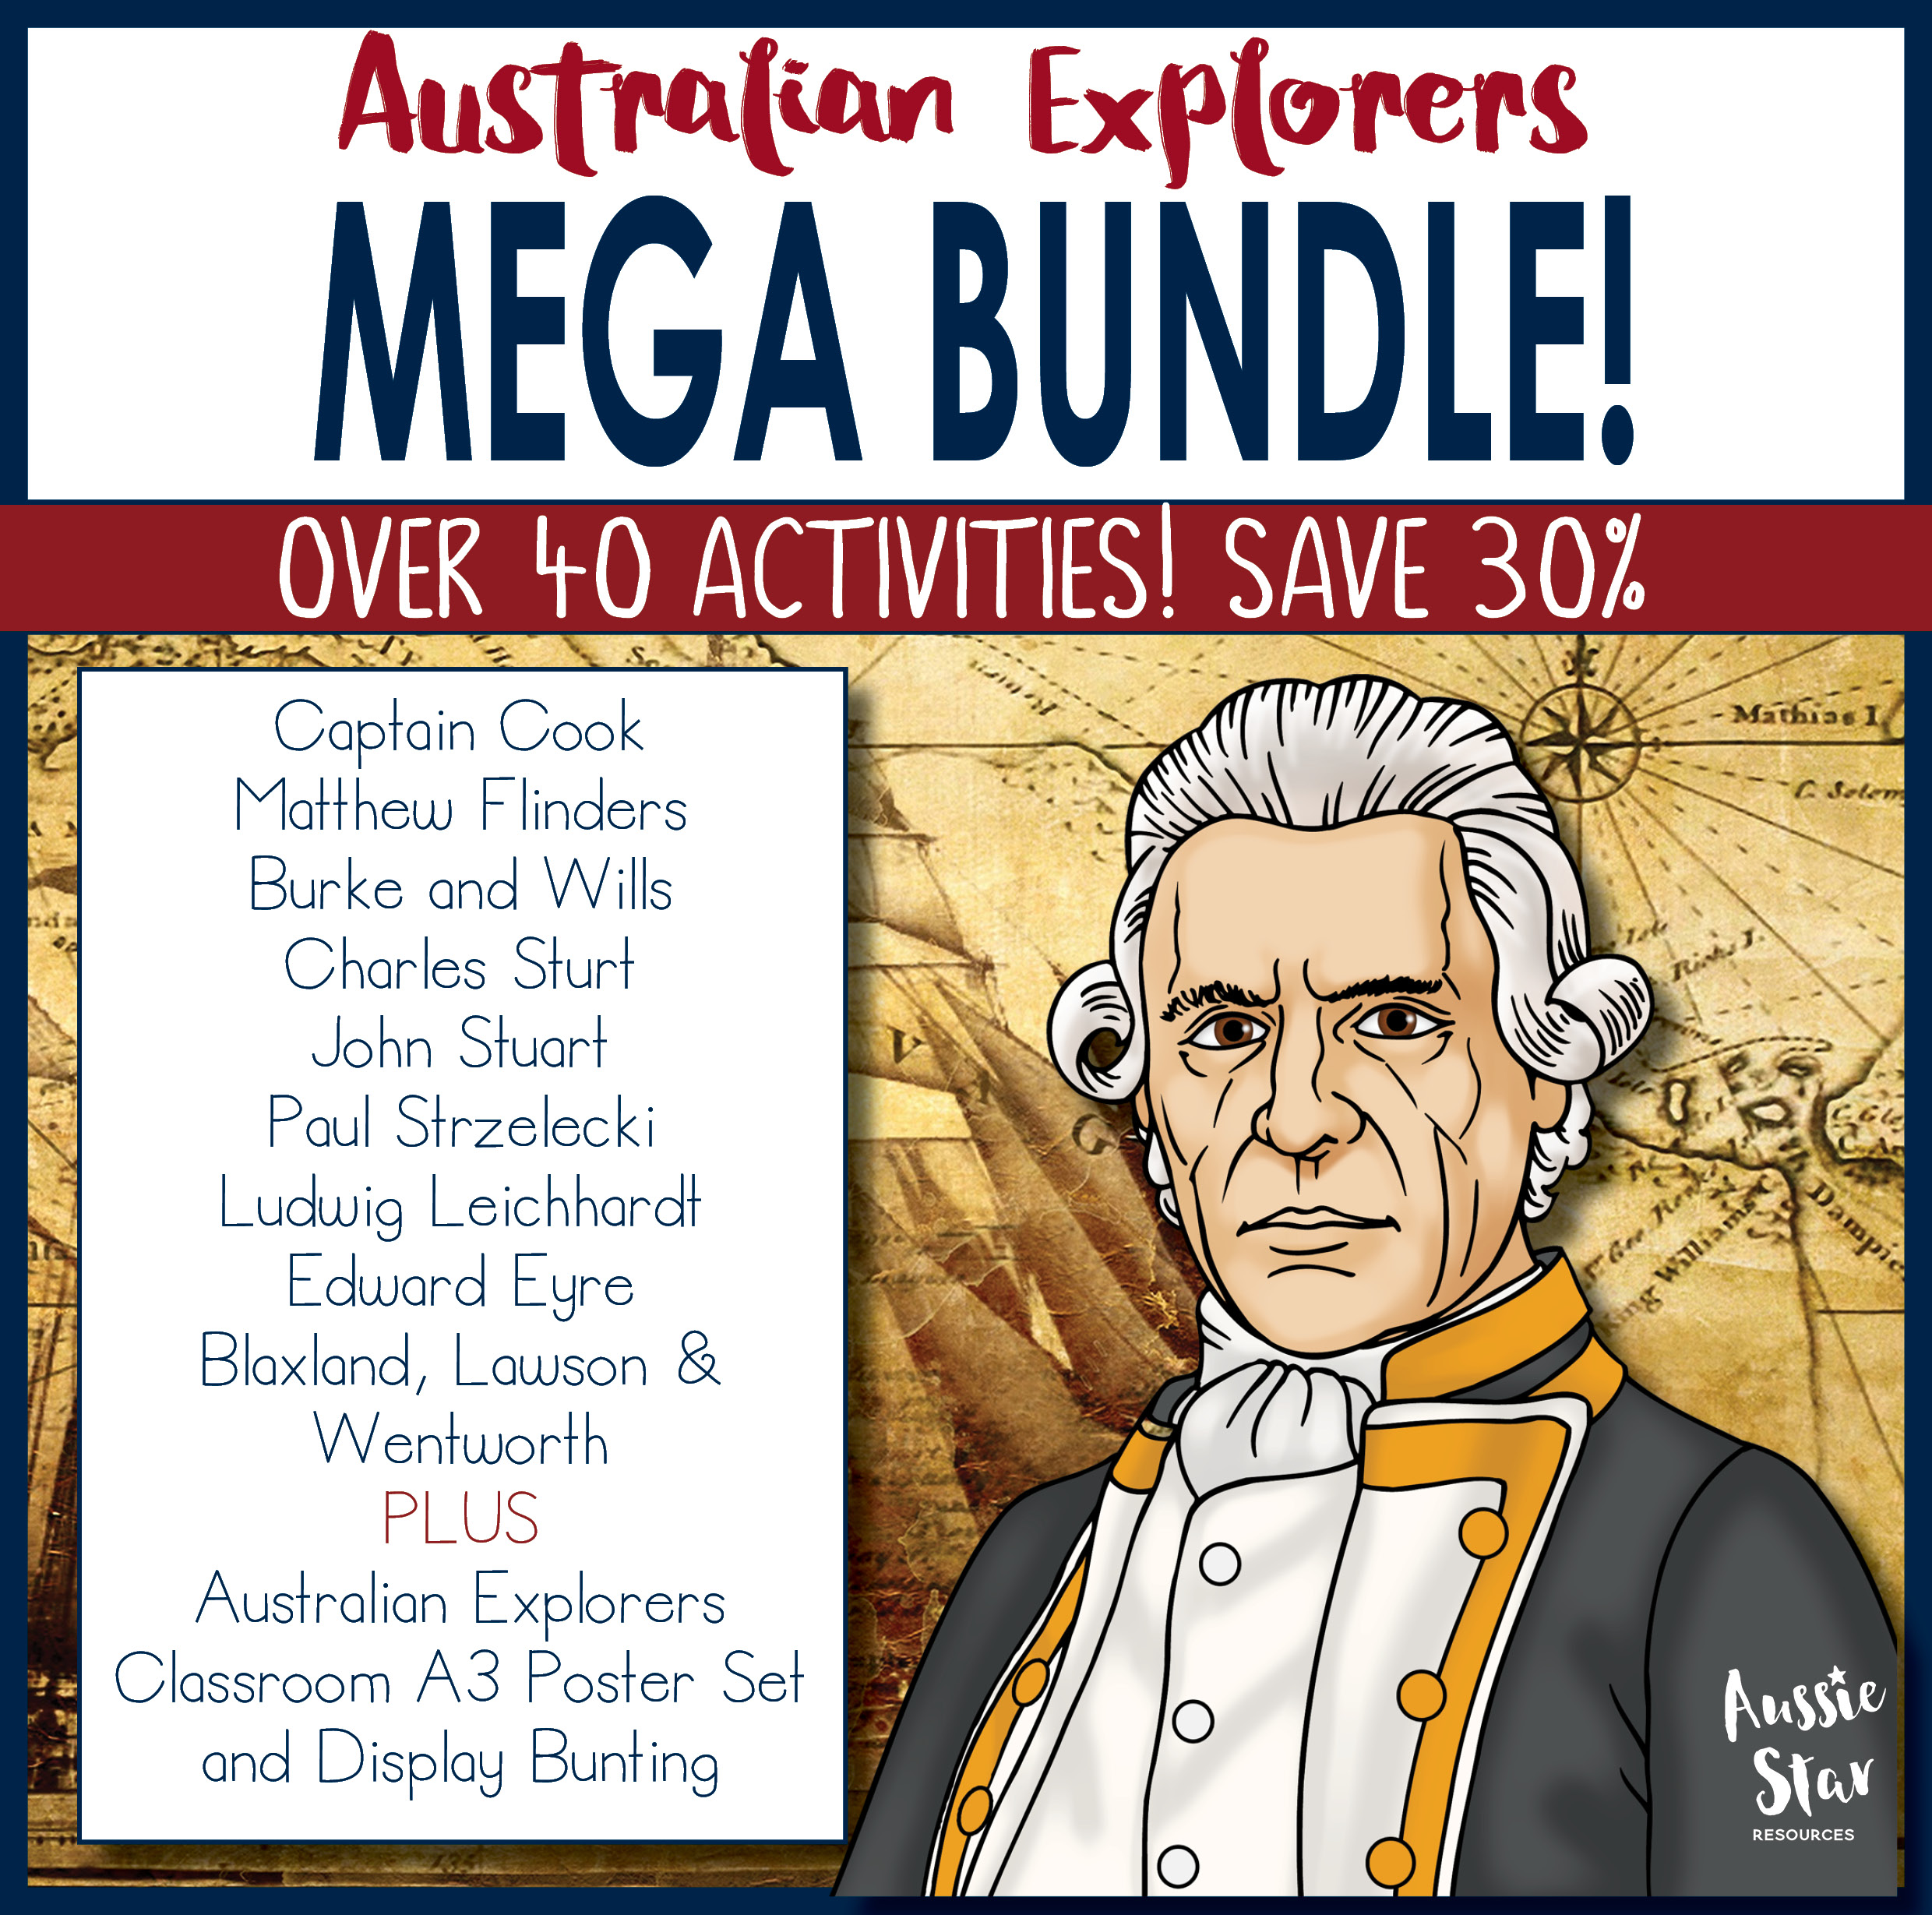 Australian Explorers mega bundle save 30